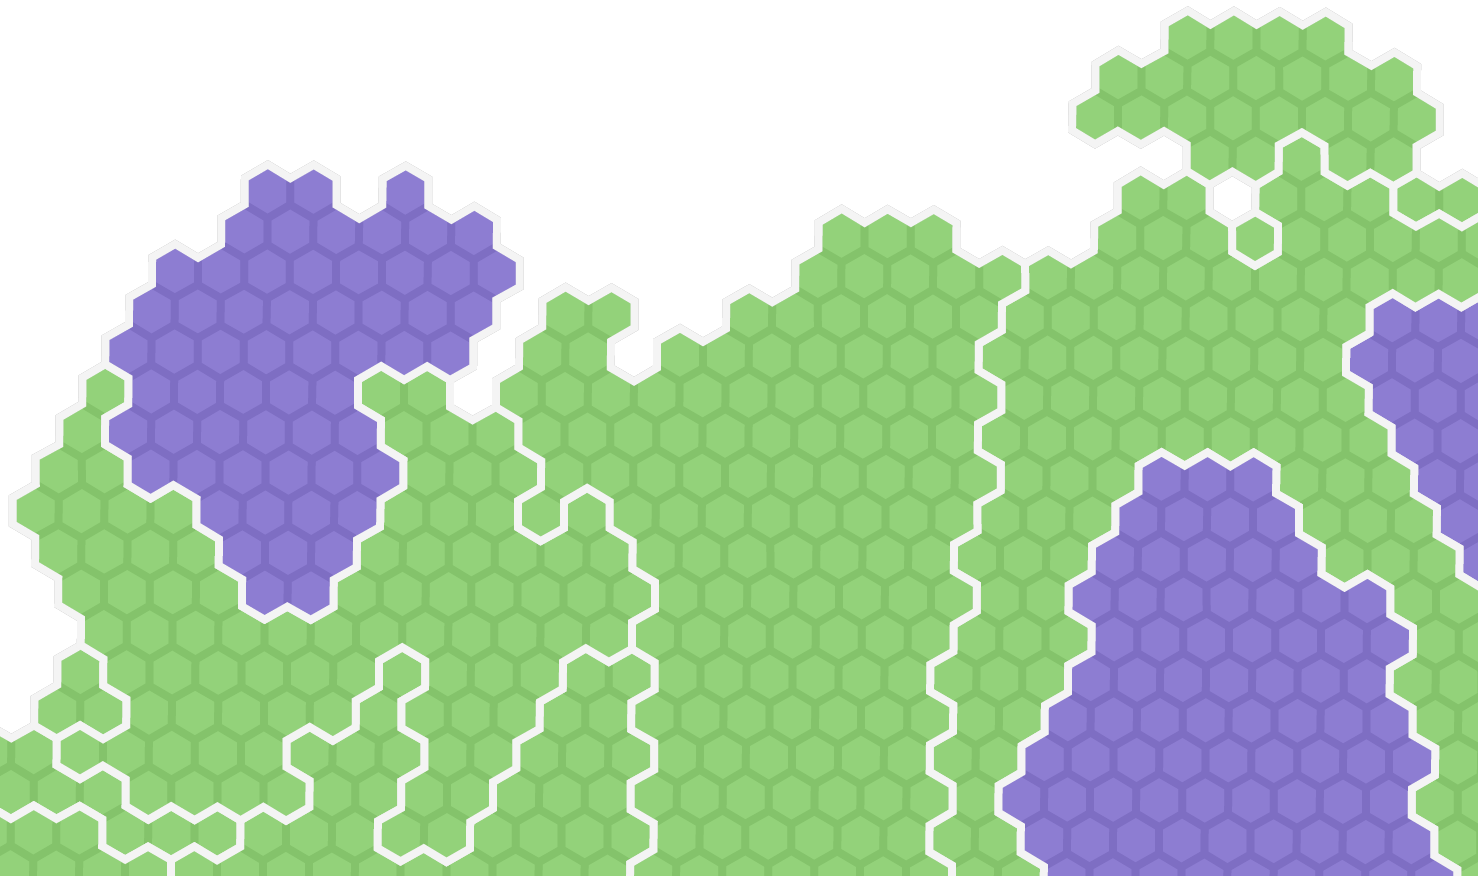 Close-up view of the cartogram's hexagons